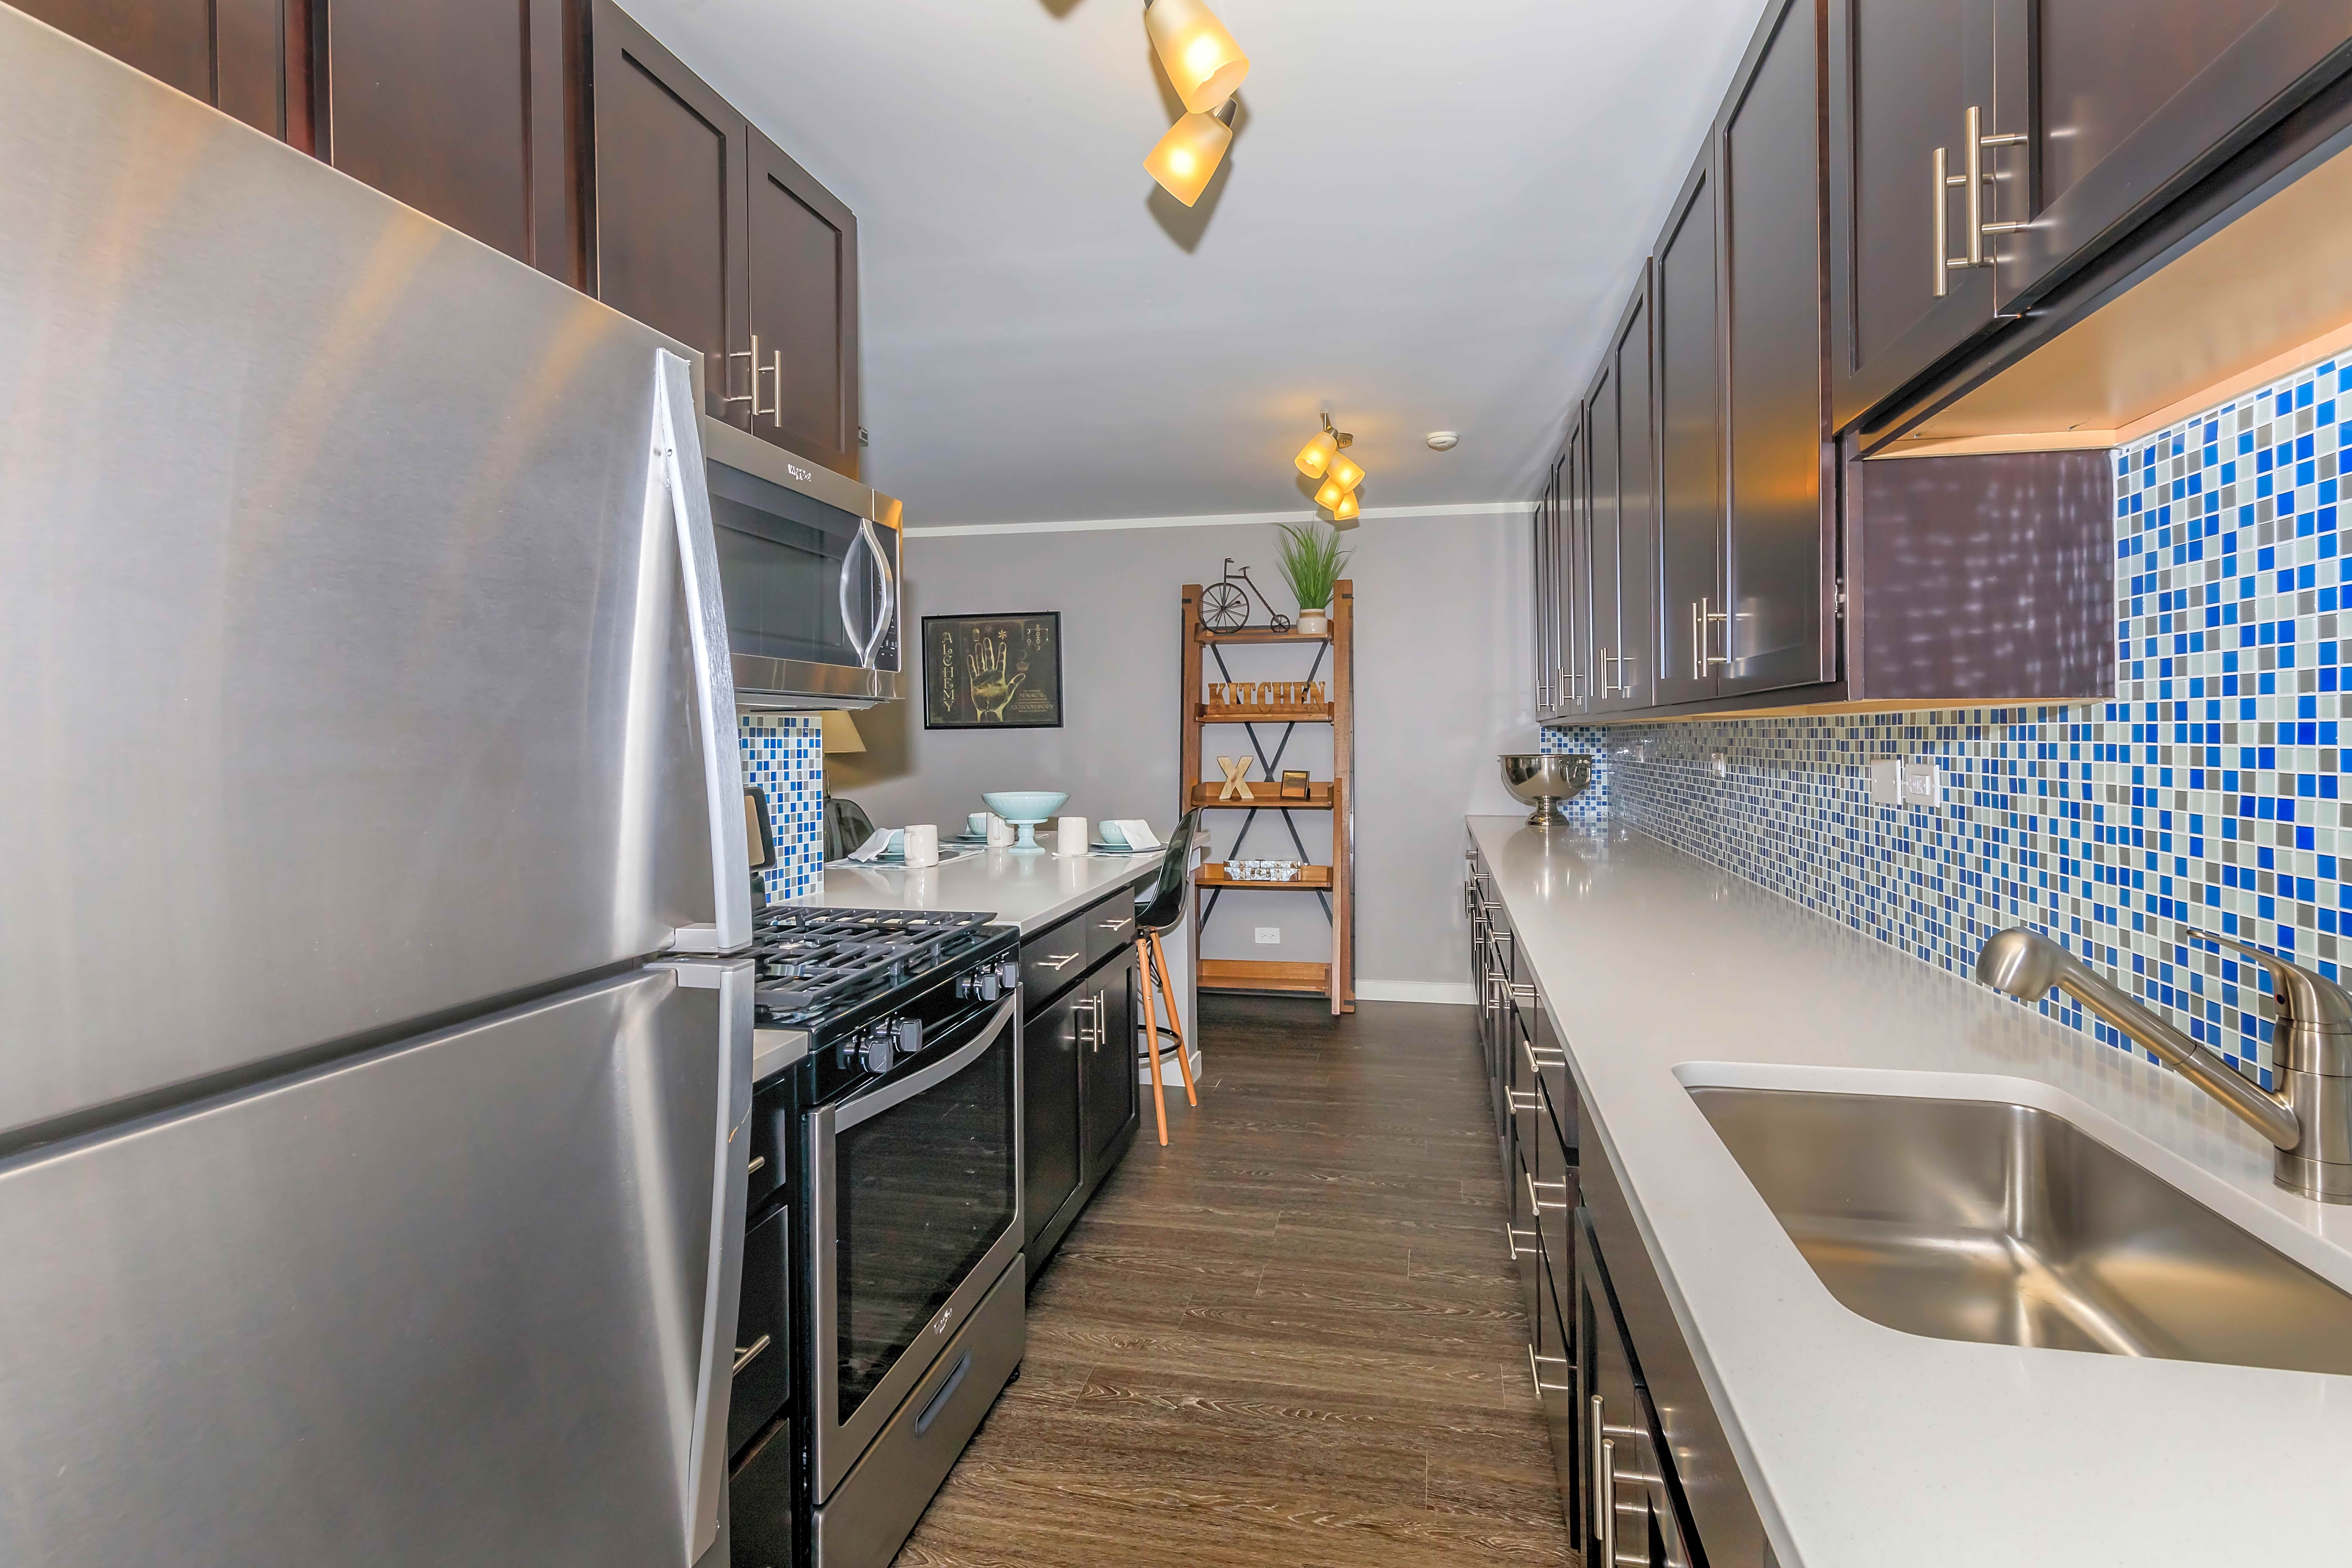 Apartments Near DeVry Renaissance At Carol Stream for DeVry University Students in Addison, IL